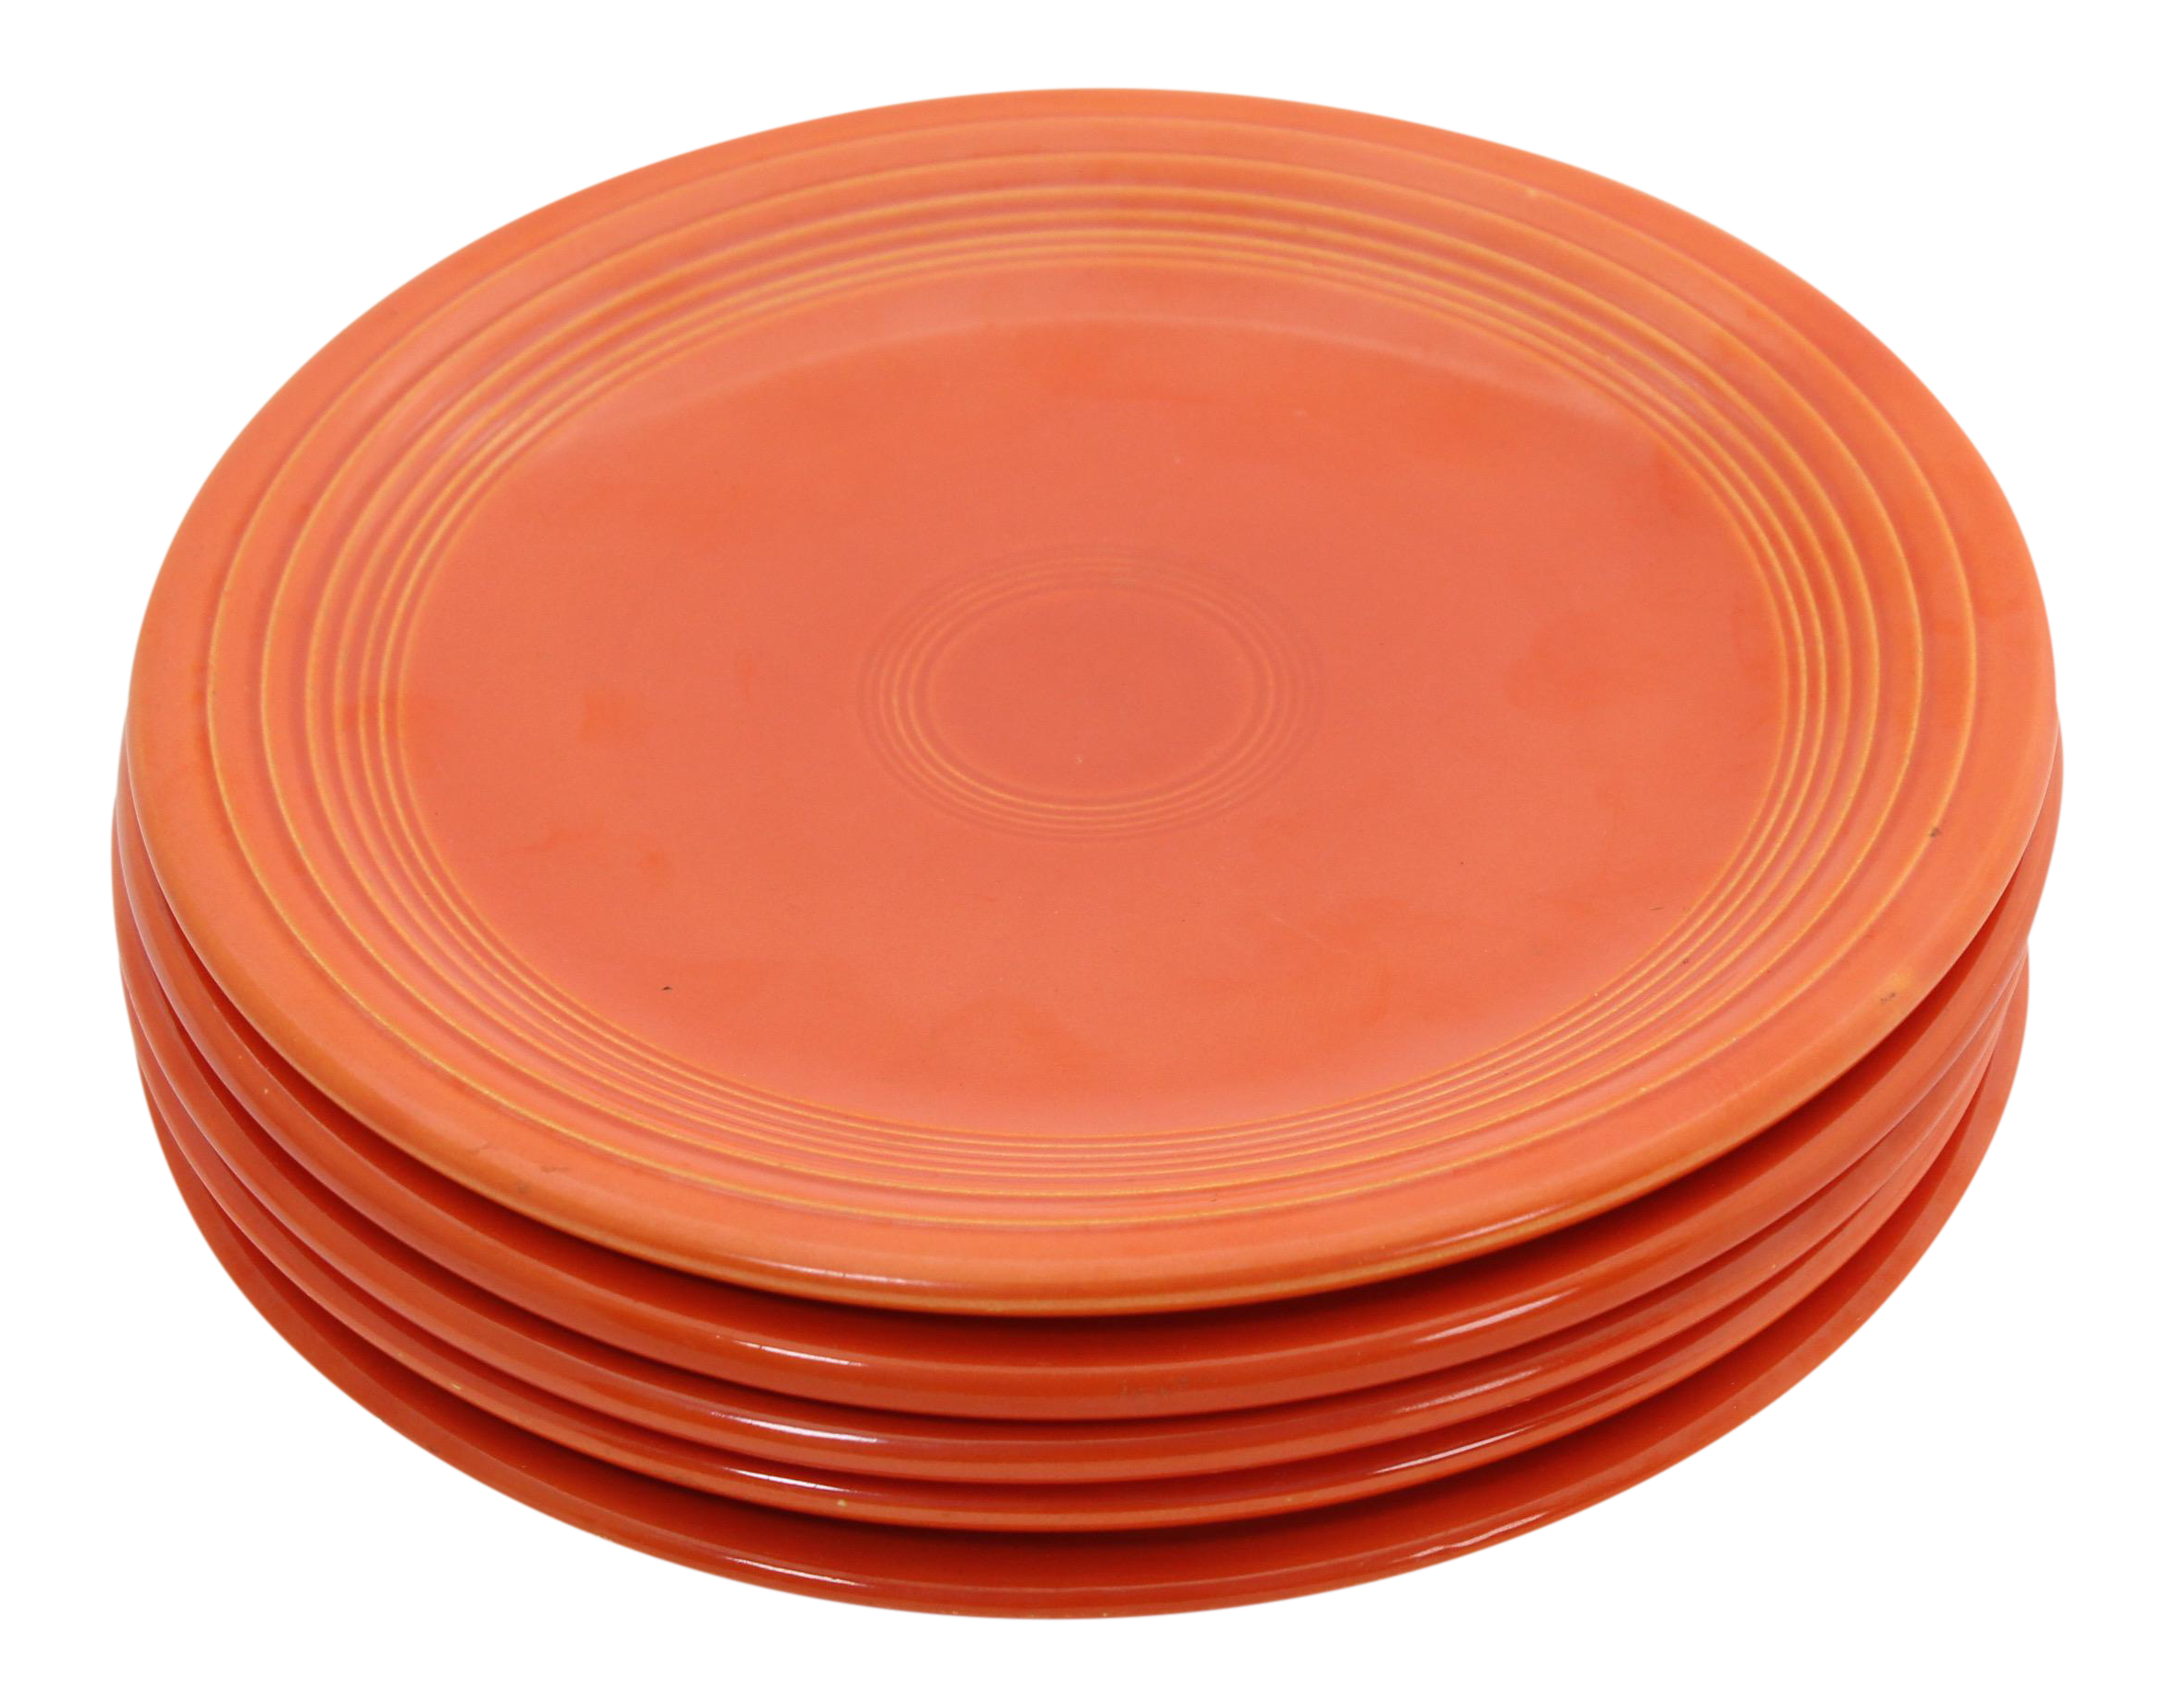 Vintage \ Radioactive\  Orange Fiesta Ware Plates - Set of 5  sc 1 st  Chairish & Vintage \